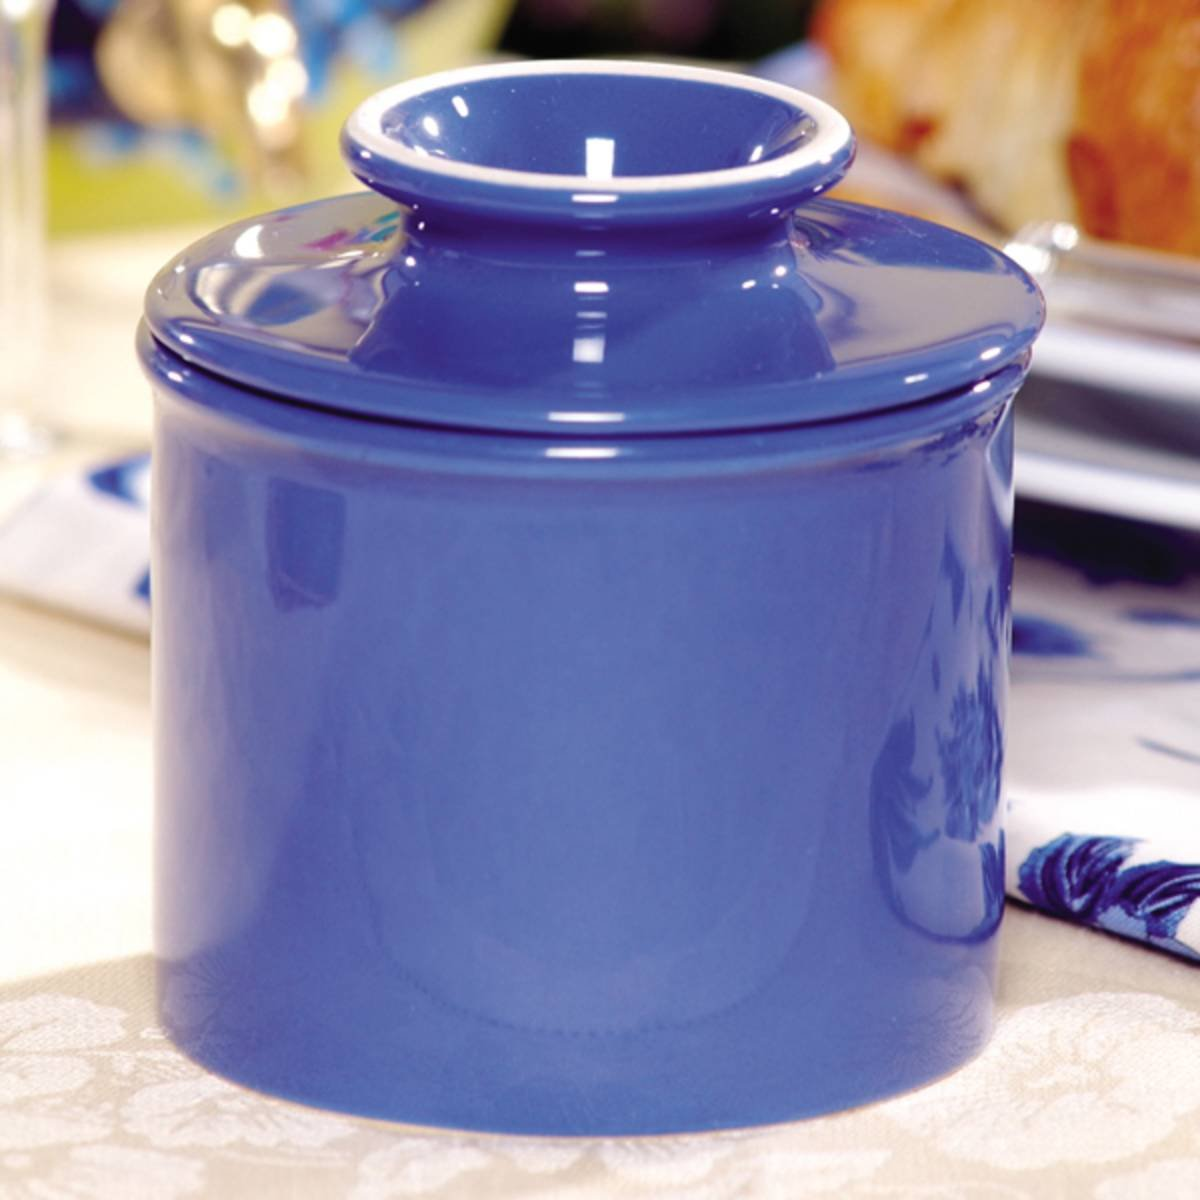 The Original Butter Bell Crock by L. Tremain, Retro & Matte Collection - Royal Blue